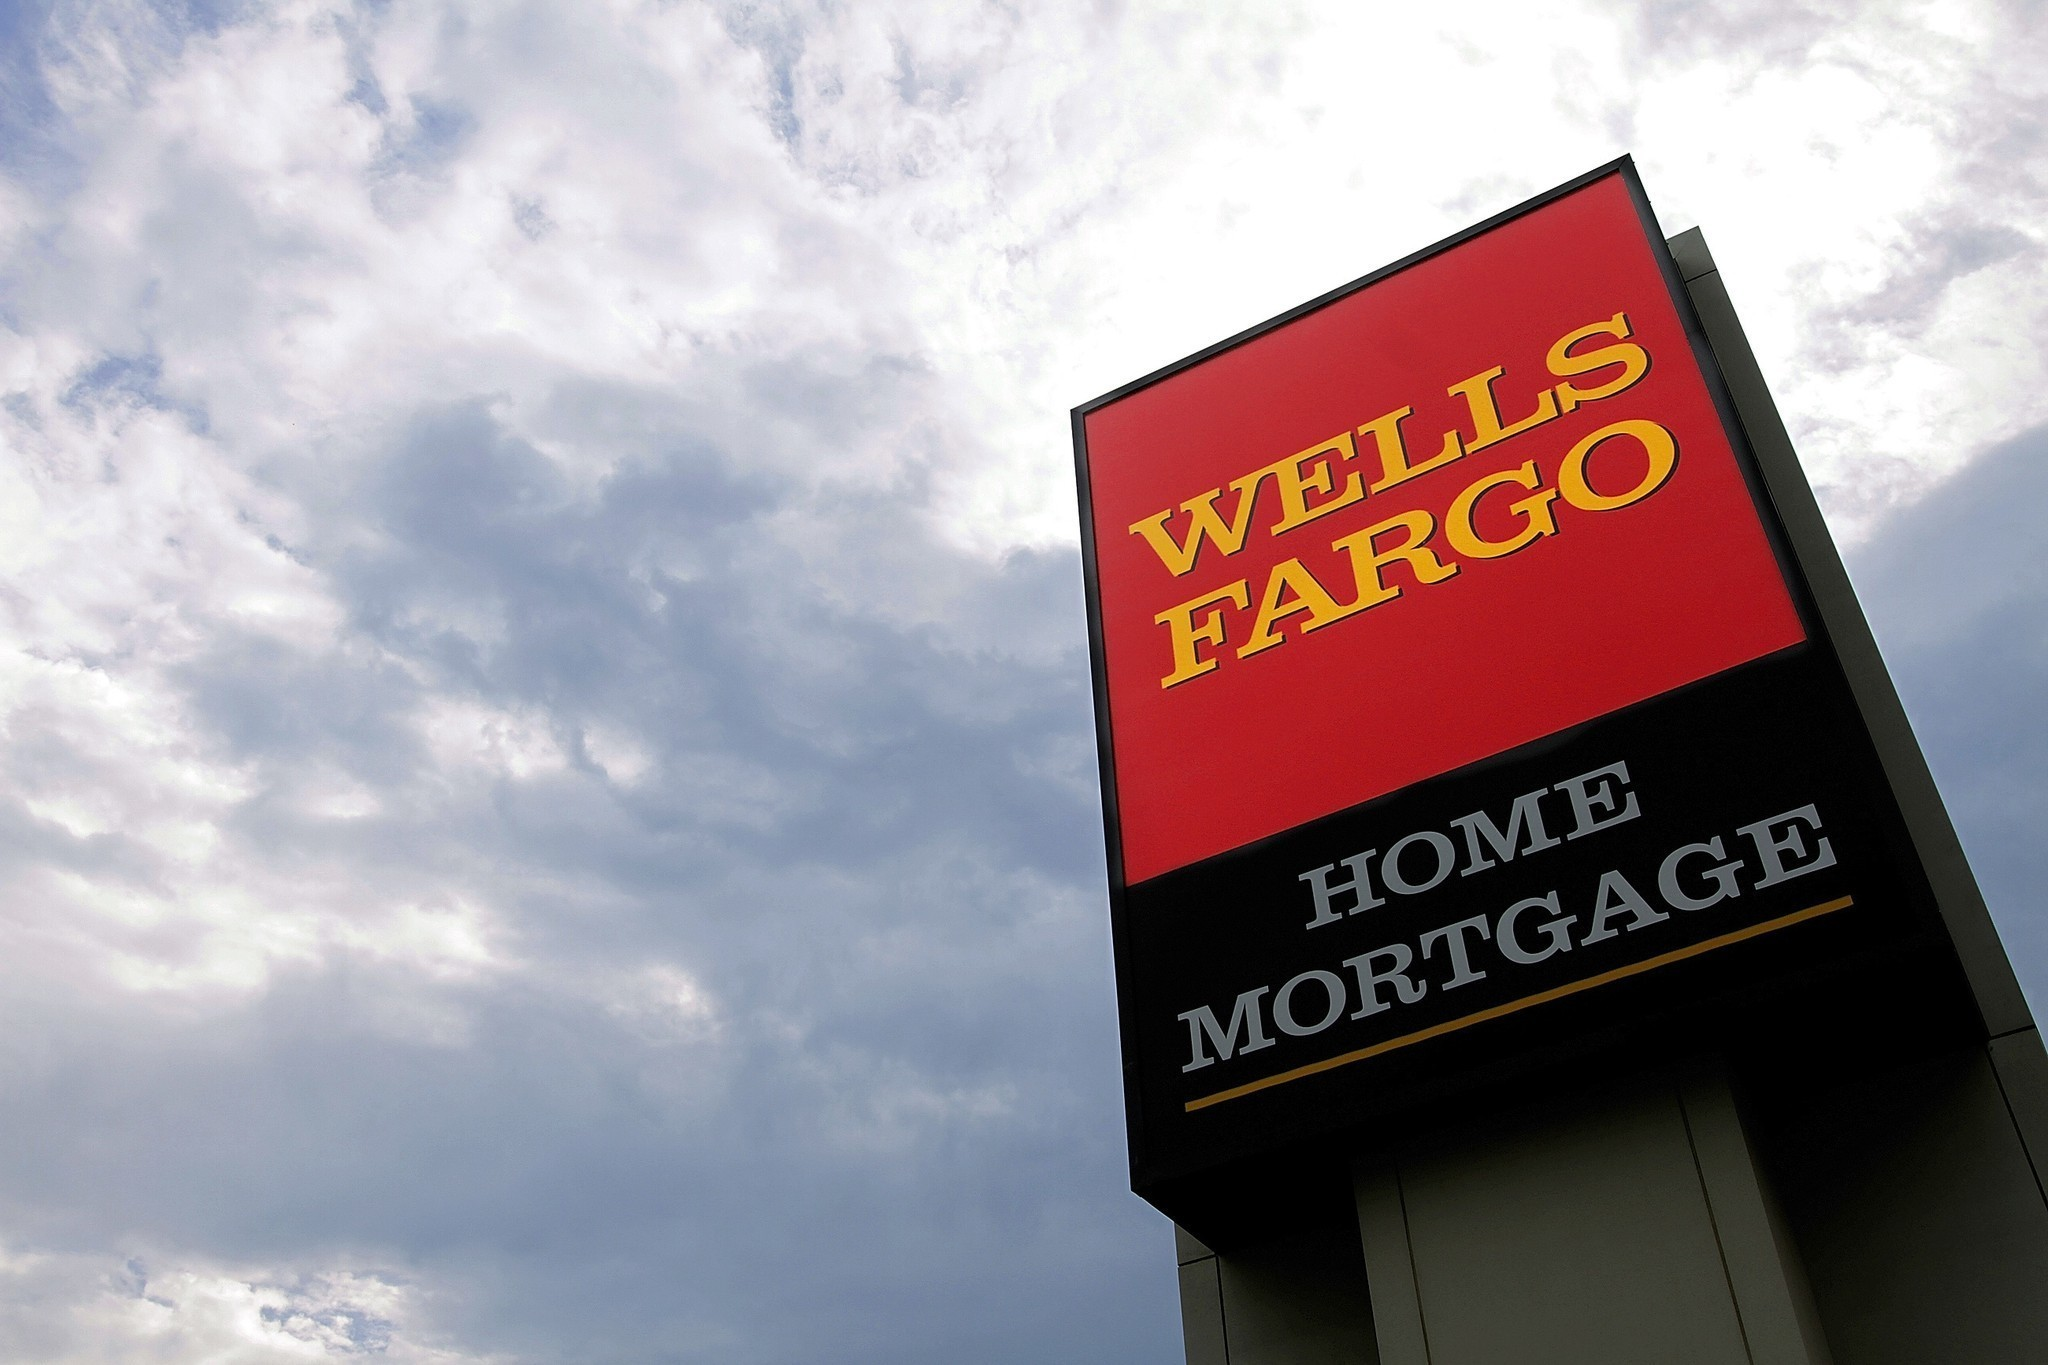 Wells Fargo is accused of bias in upkeep of foreclosed homes - LA Times